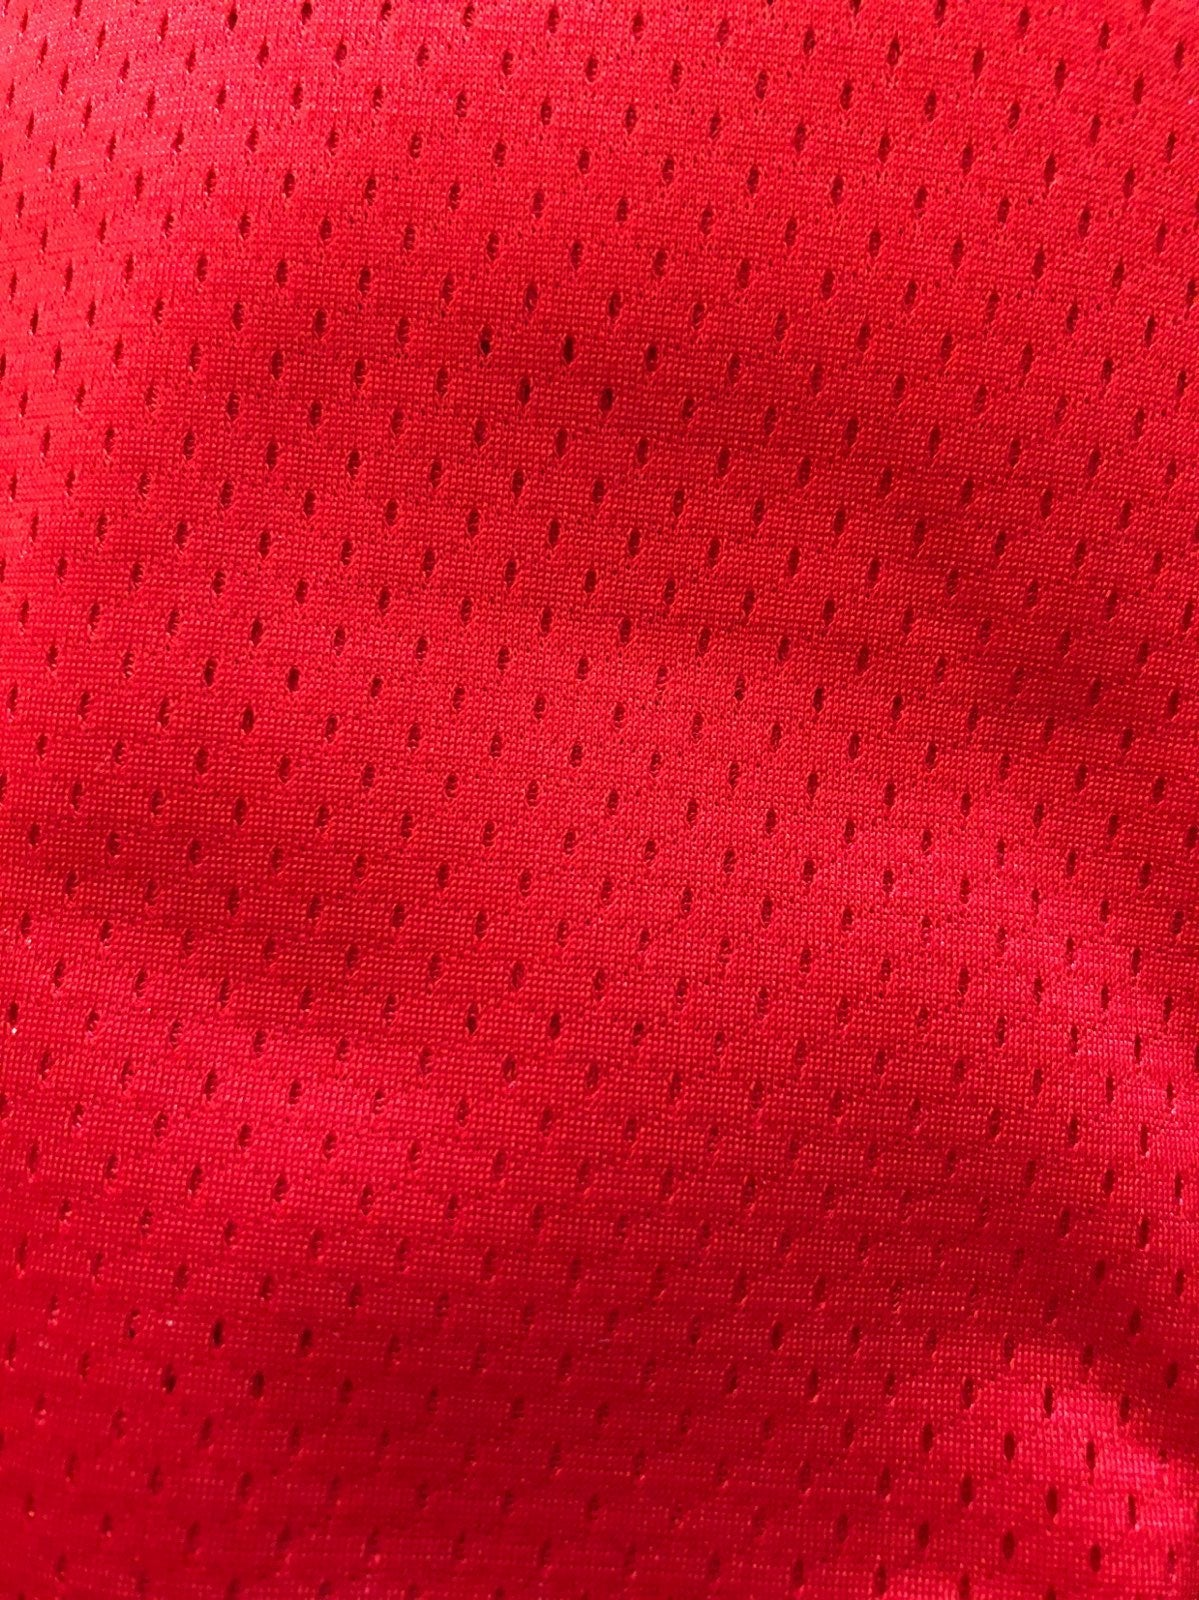 """NEW JERSEY Fabric TWO YARDS. 72X42- 56"""""""